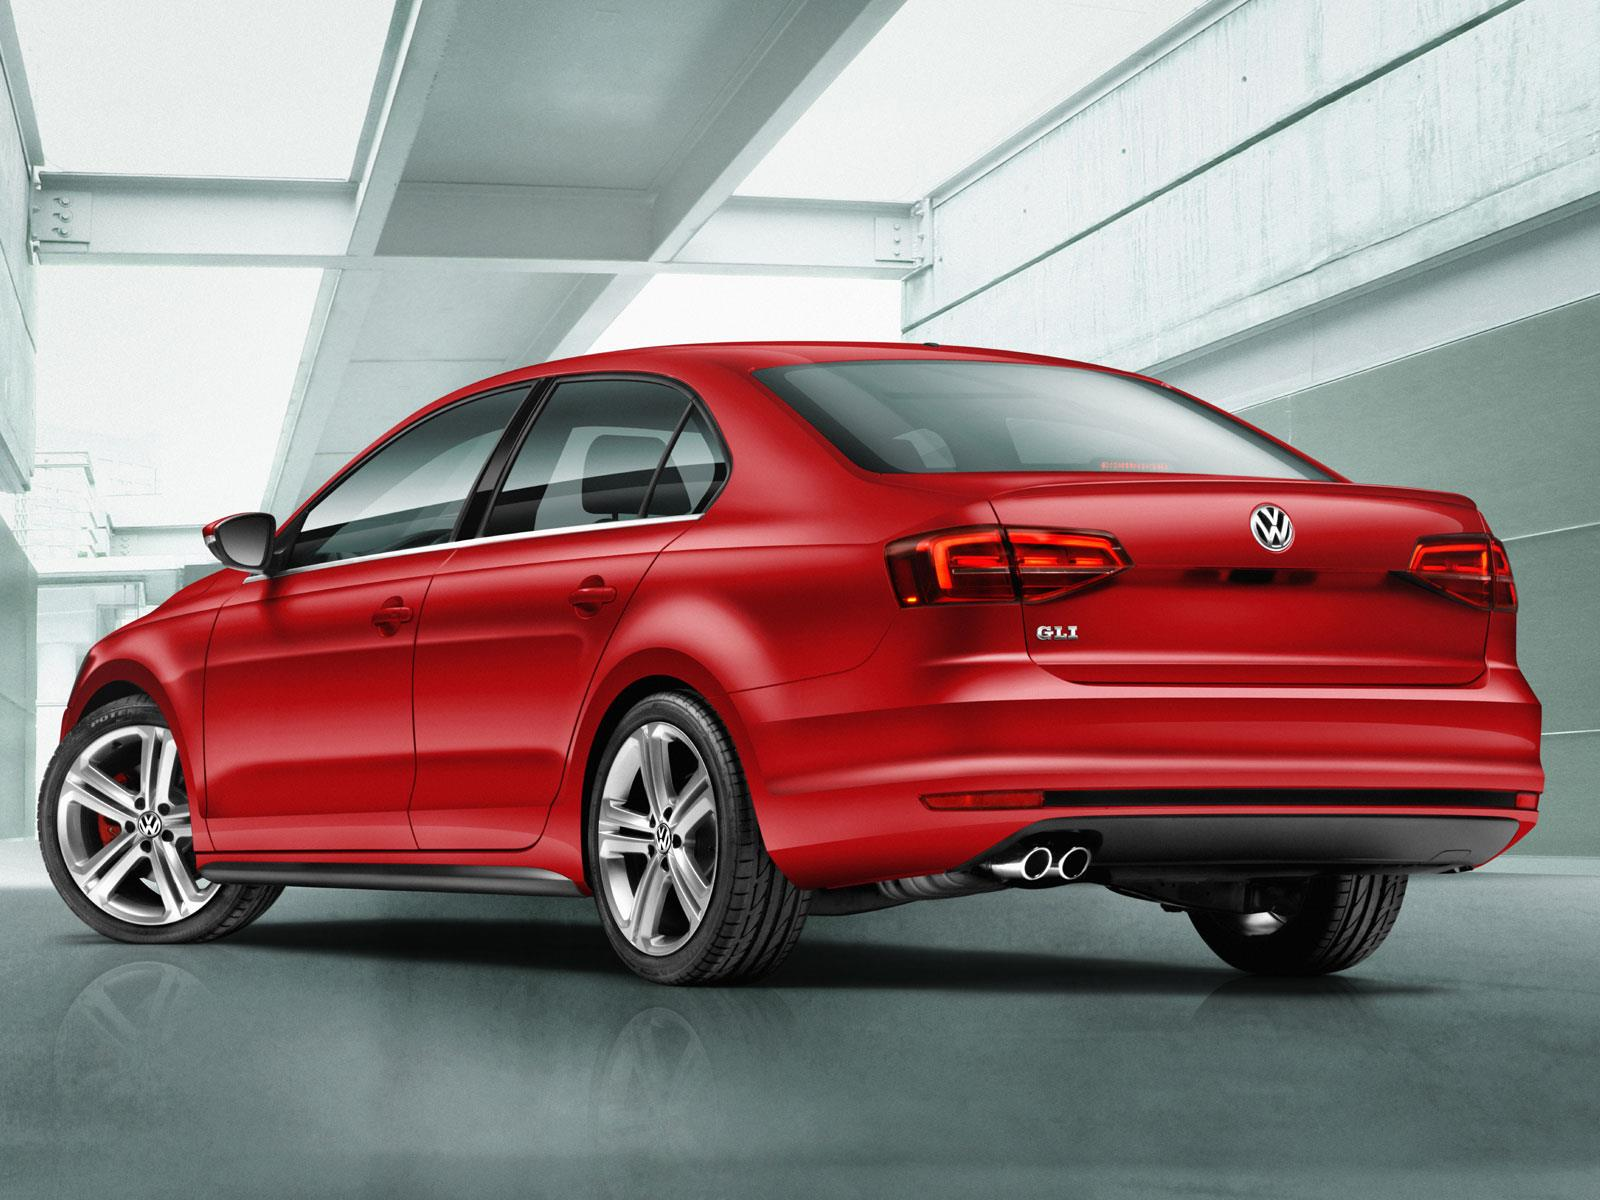 2015 Jetta Gli Features 2017 2018 Best Cars Reviews   2017 - 2018 Best Cars Reviews